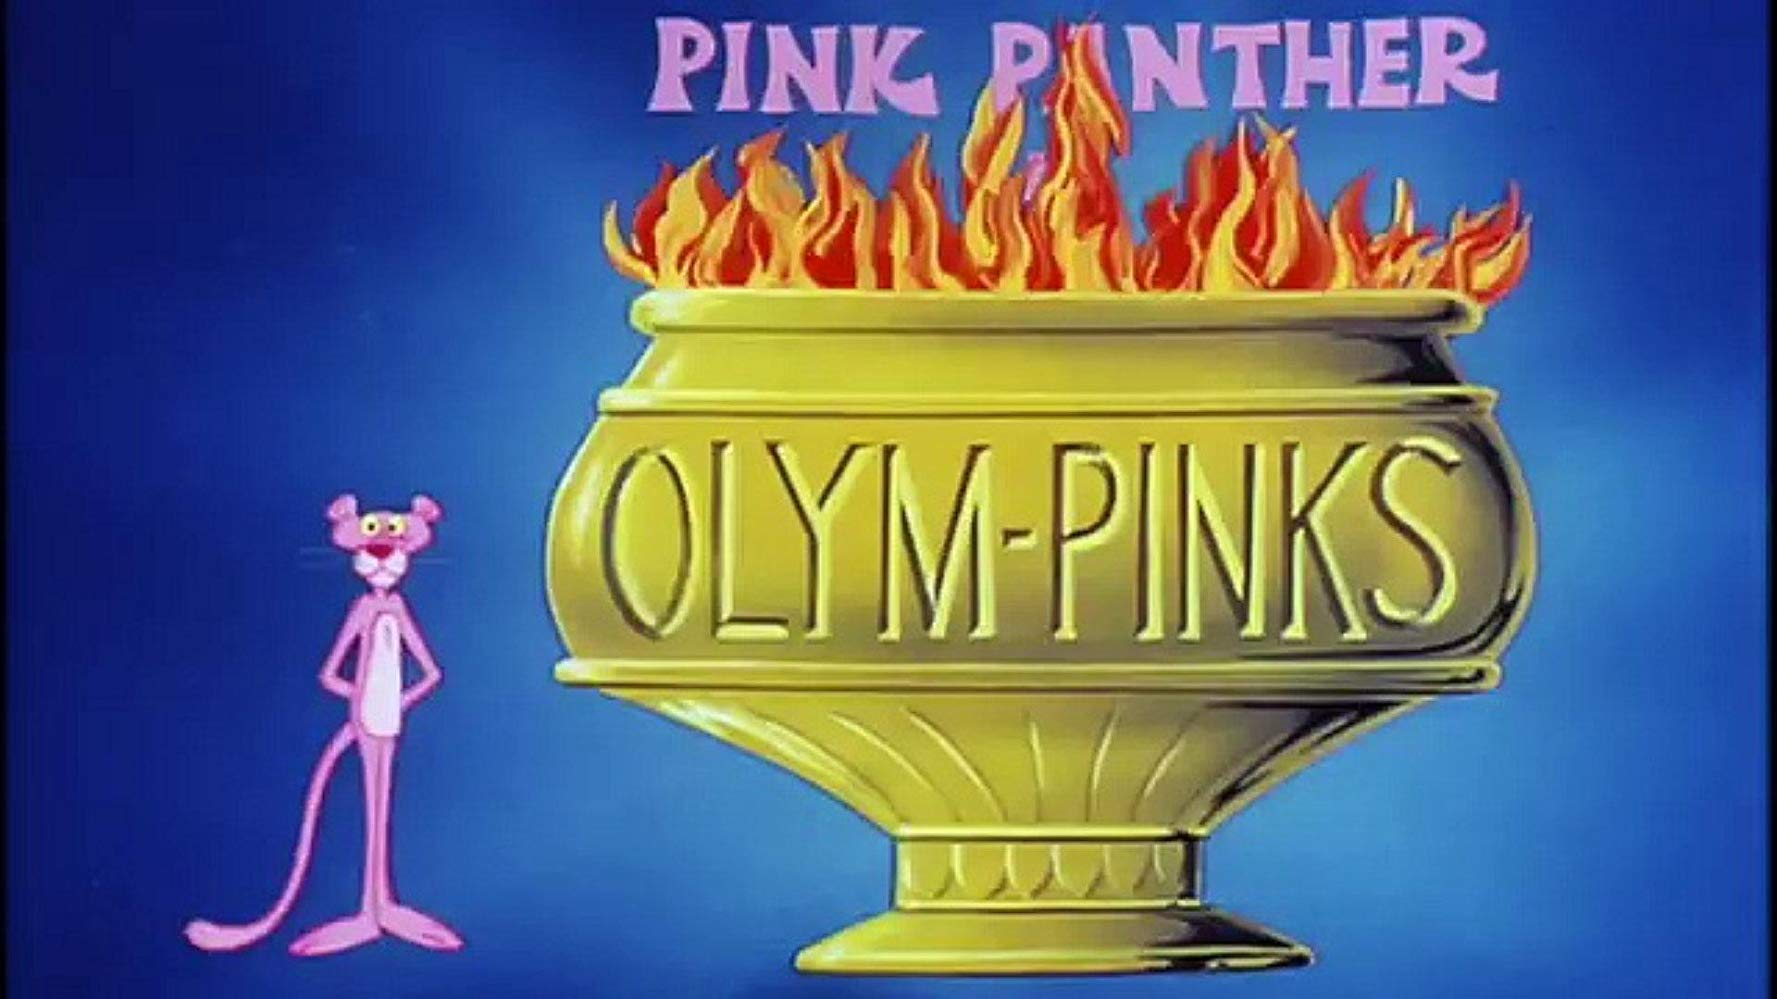 Pink Panther in the Olym-pinks (1980)